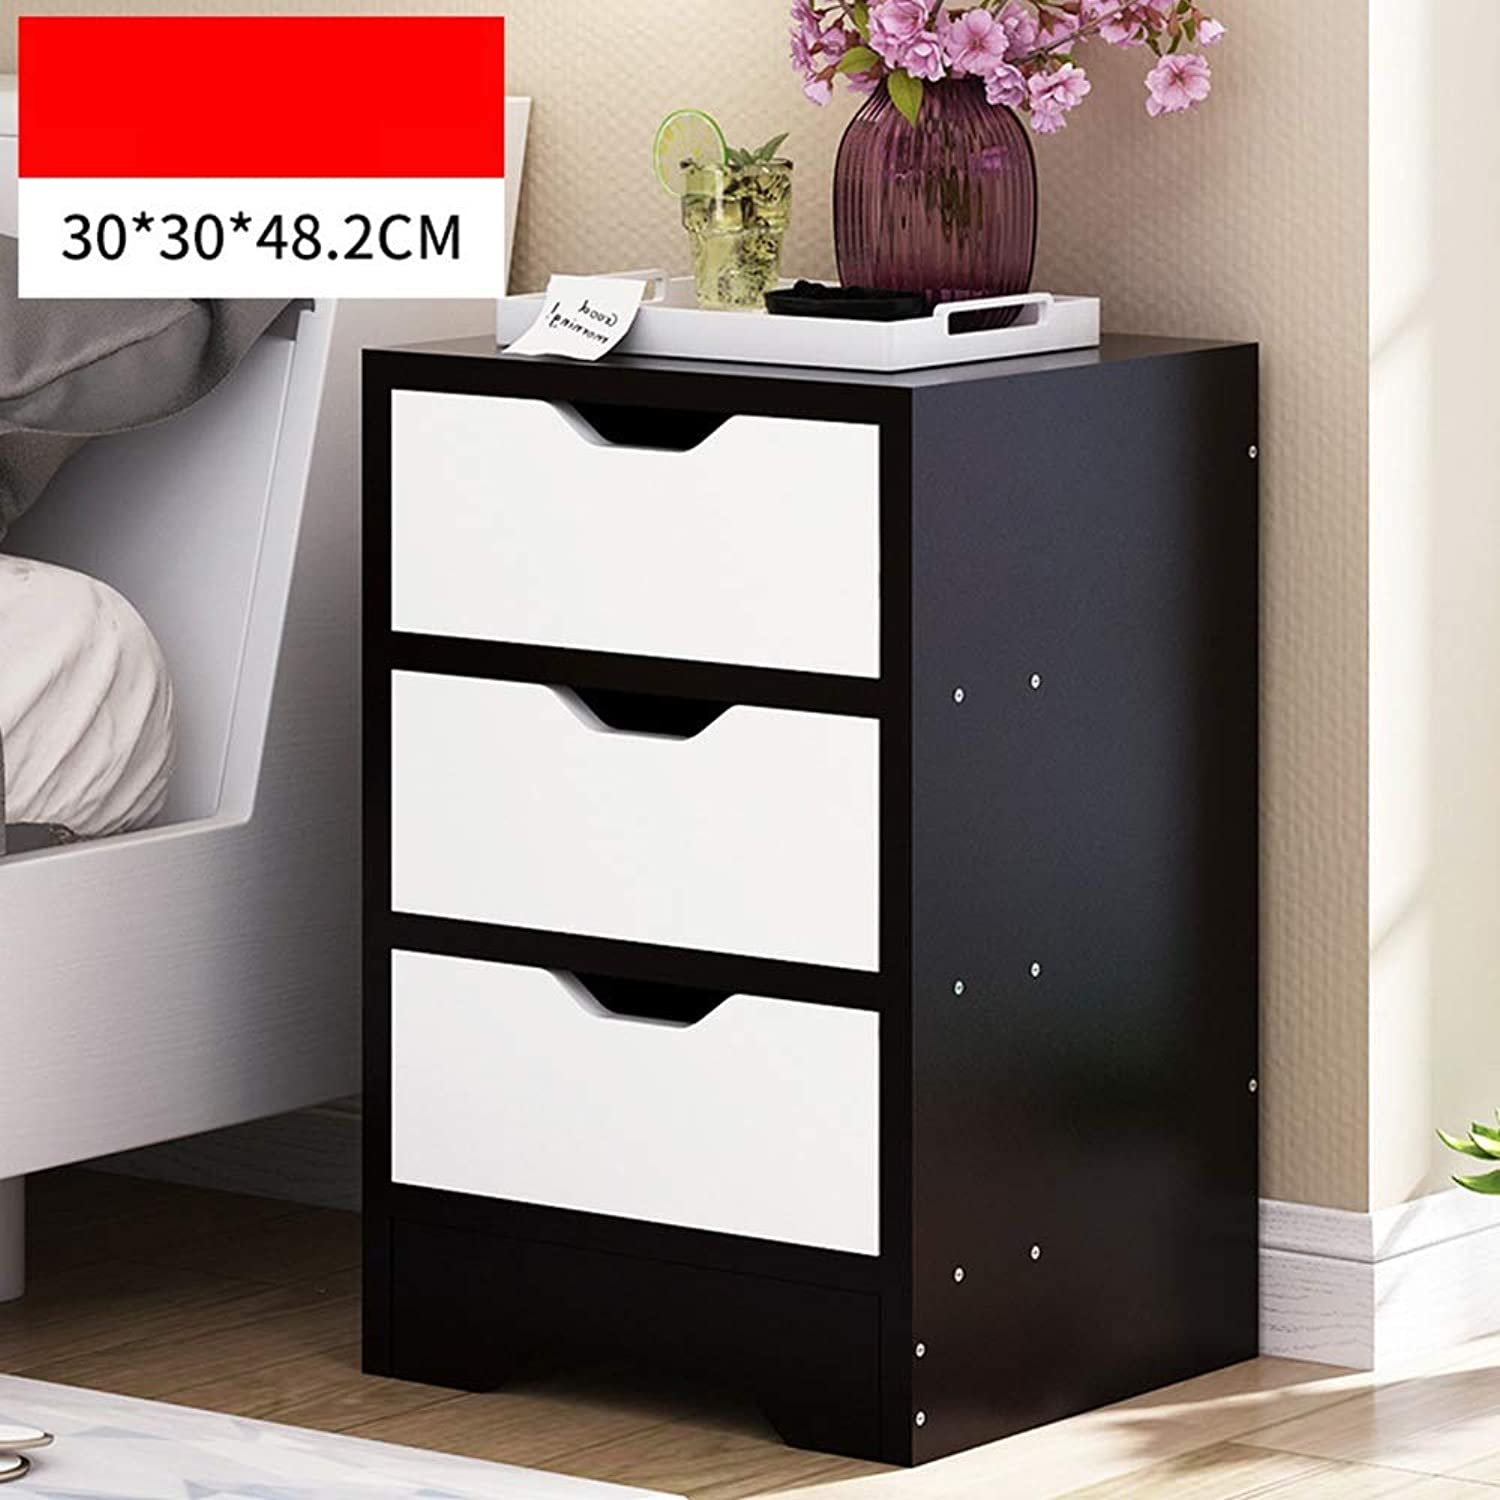 Sububblepper Bedside Table Storage Small Cabinet Storage File Cabinet Bedroom Bedside Cabinet (color   2)